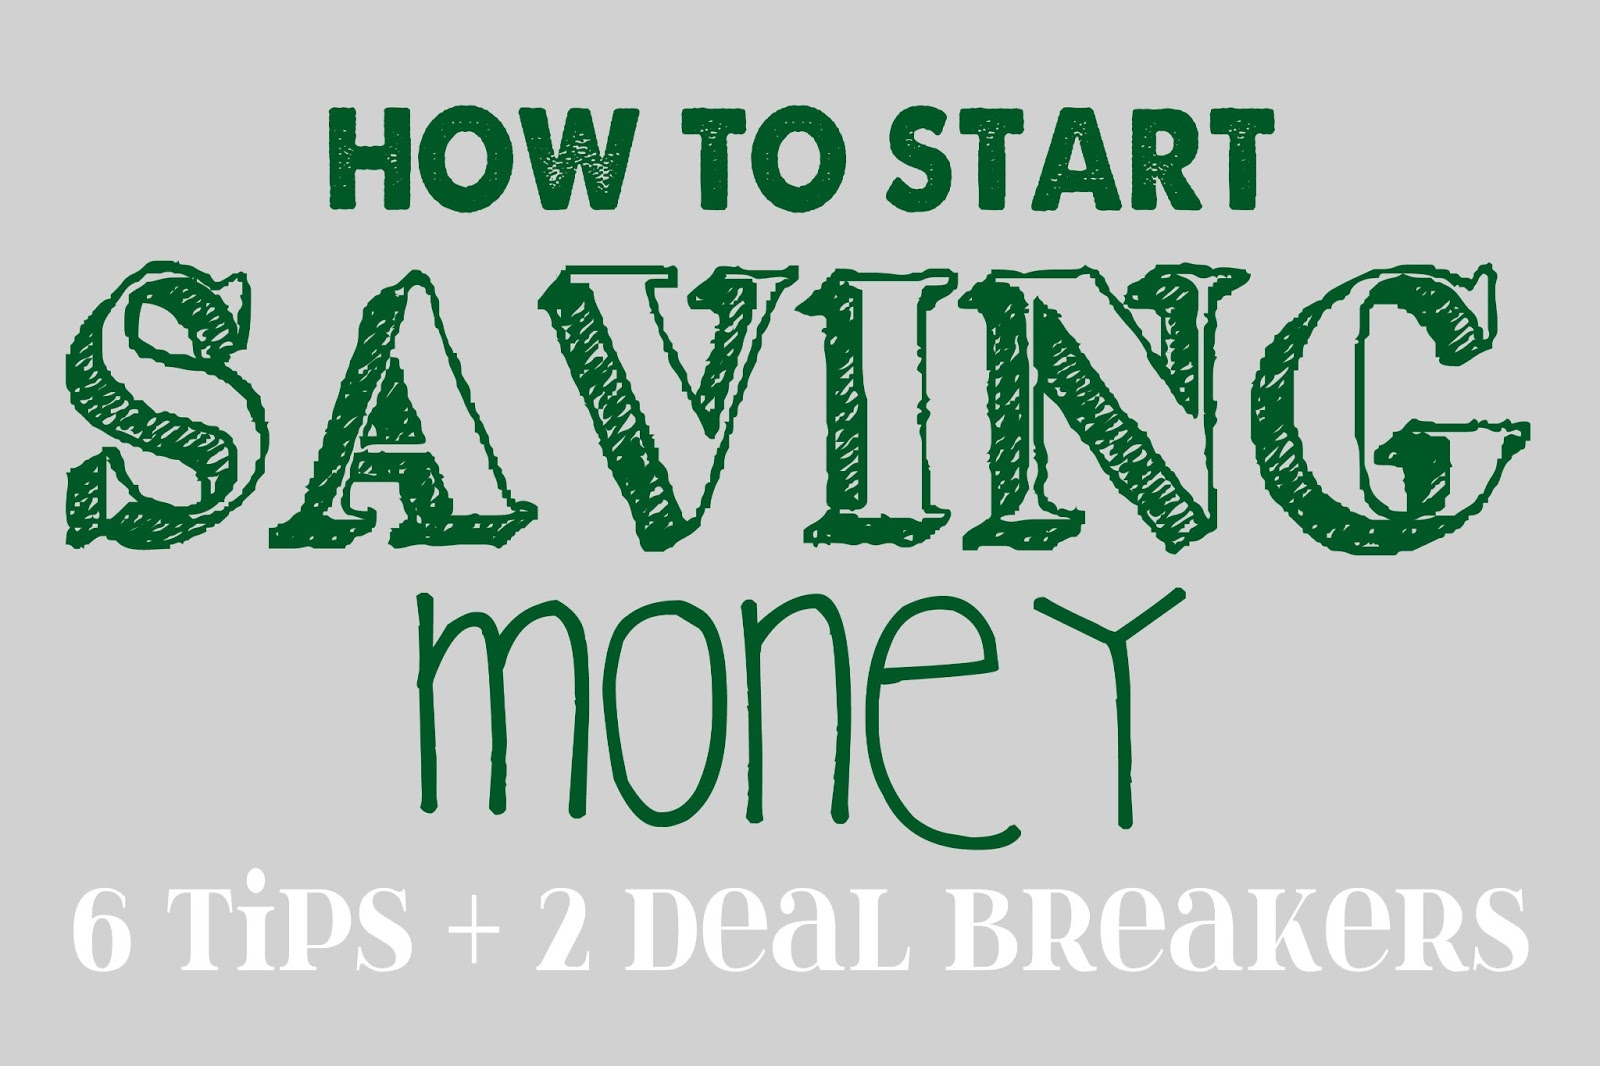 How to Start Saving Money: 6 Tips + 2 Deal Breakers